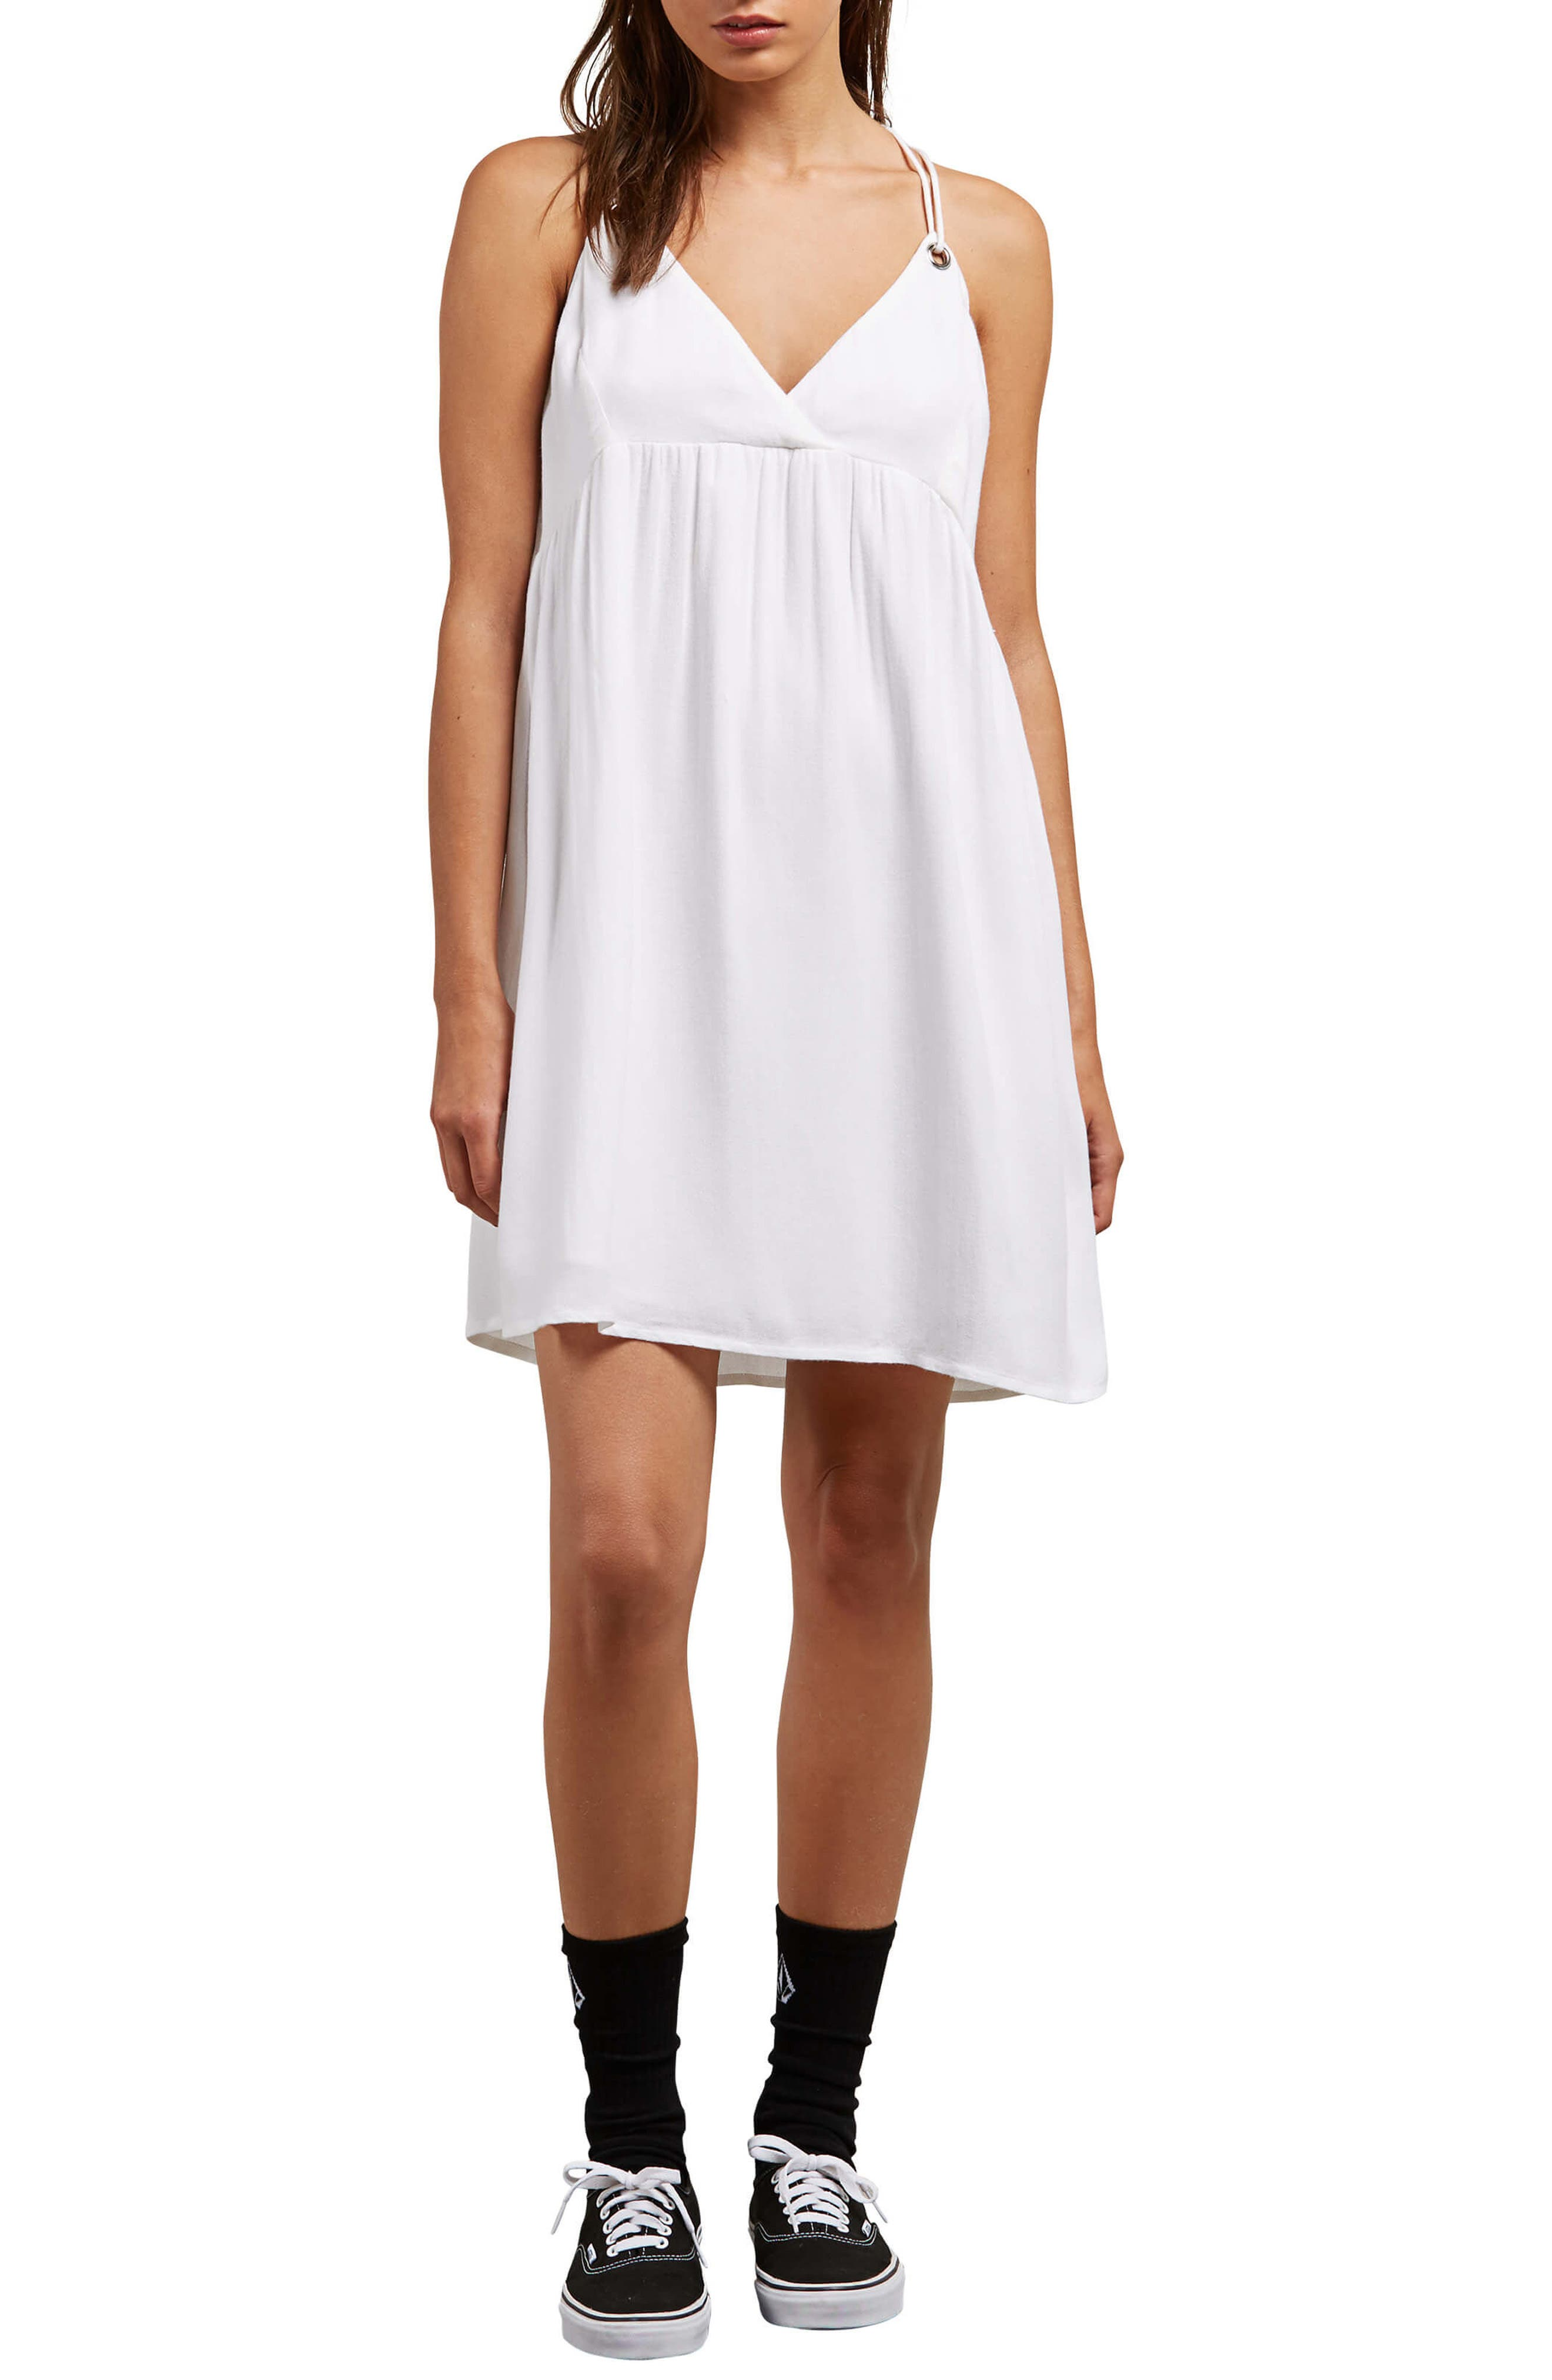 You Want This Strappy Dress,                             Main thumbnail 1, color,                             White